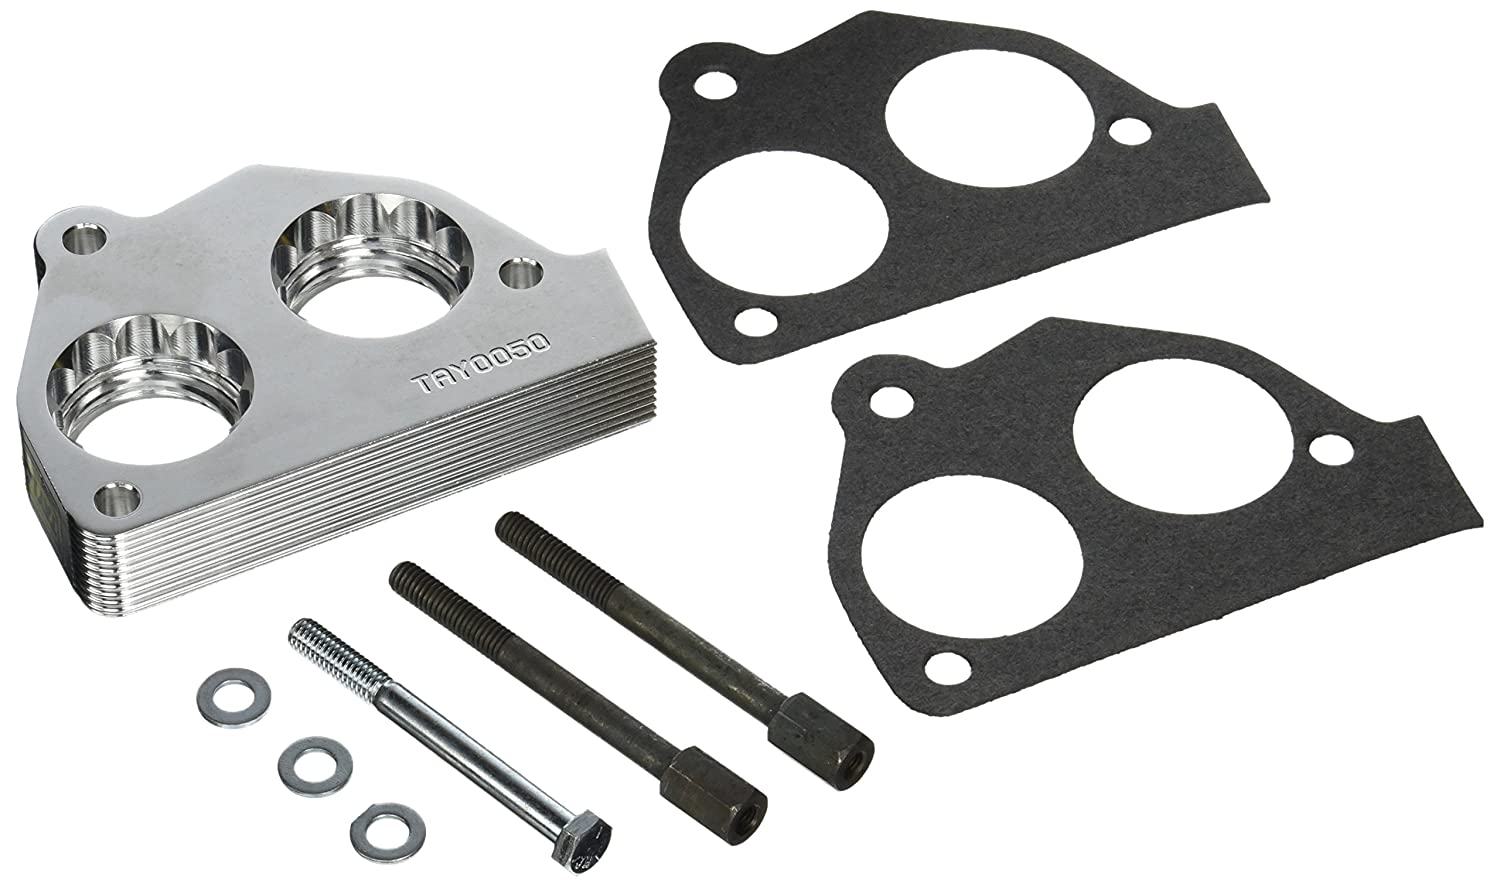 Taylor Cable 57005 Helix Power Tower Plus Throttle Body Spacer